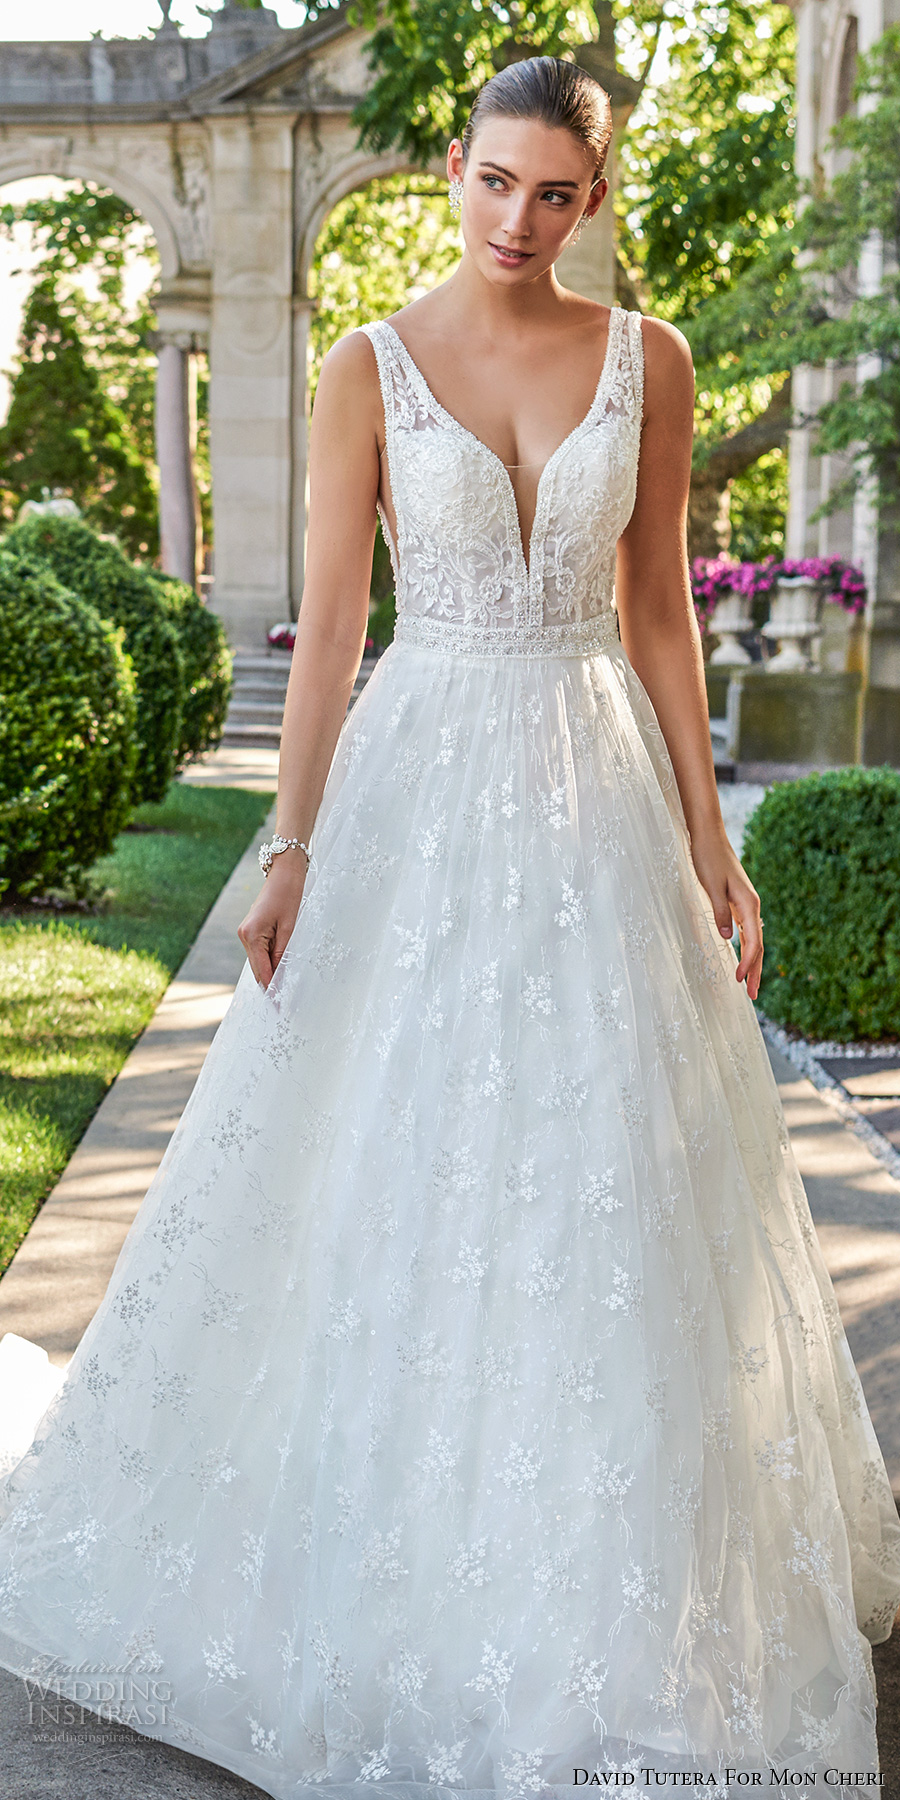 david tutera mc spring 2017 bridal sleeevless deep plunging v neck heavily embellished bodice romantic sexy ball gown a  line wedding dress open v back sweep train (117271) fv